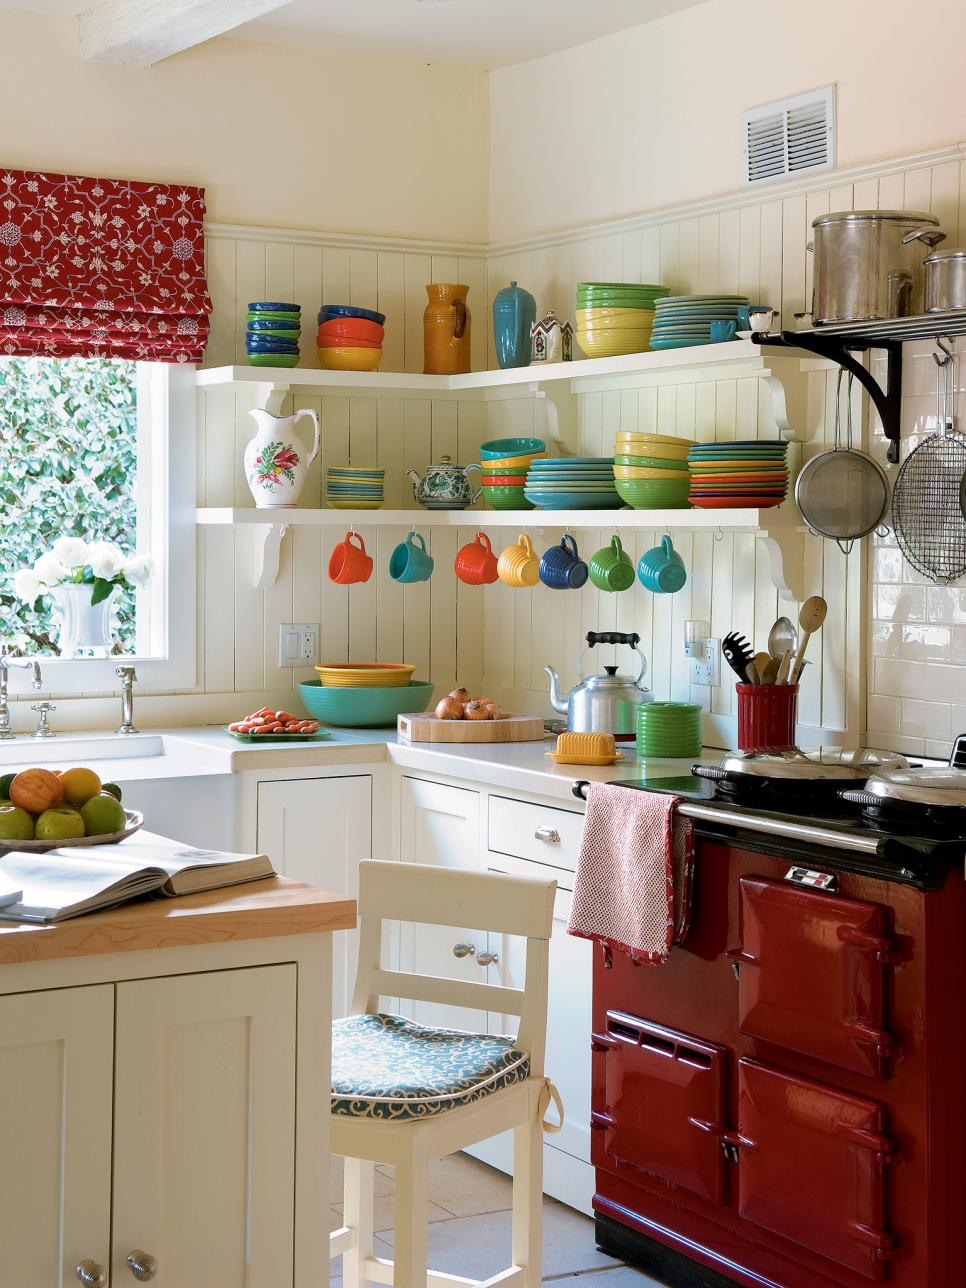 pictures of small kitchen design ideas from hgtv hgtv kitchen design ideas for small kitchens - Kitchen Design Ideas Images